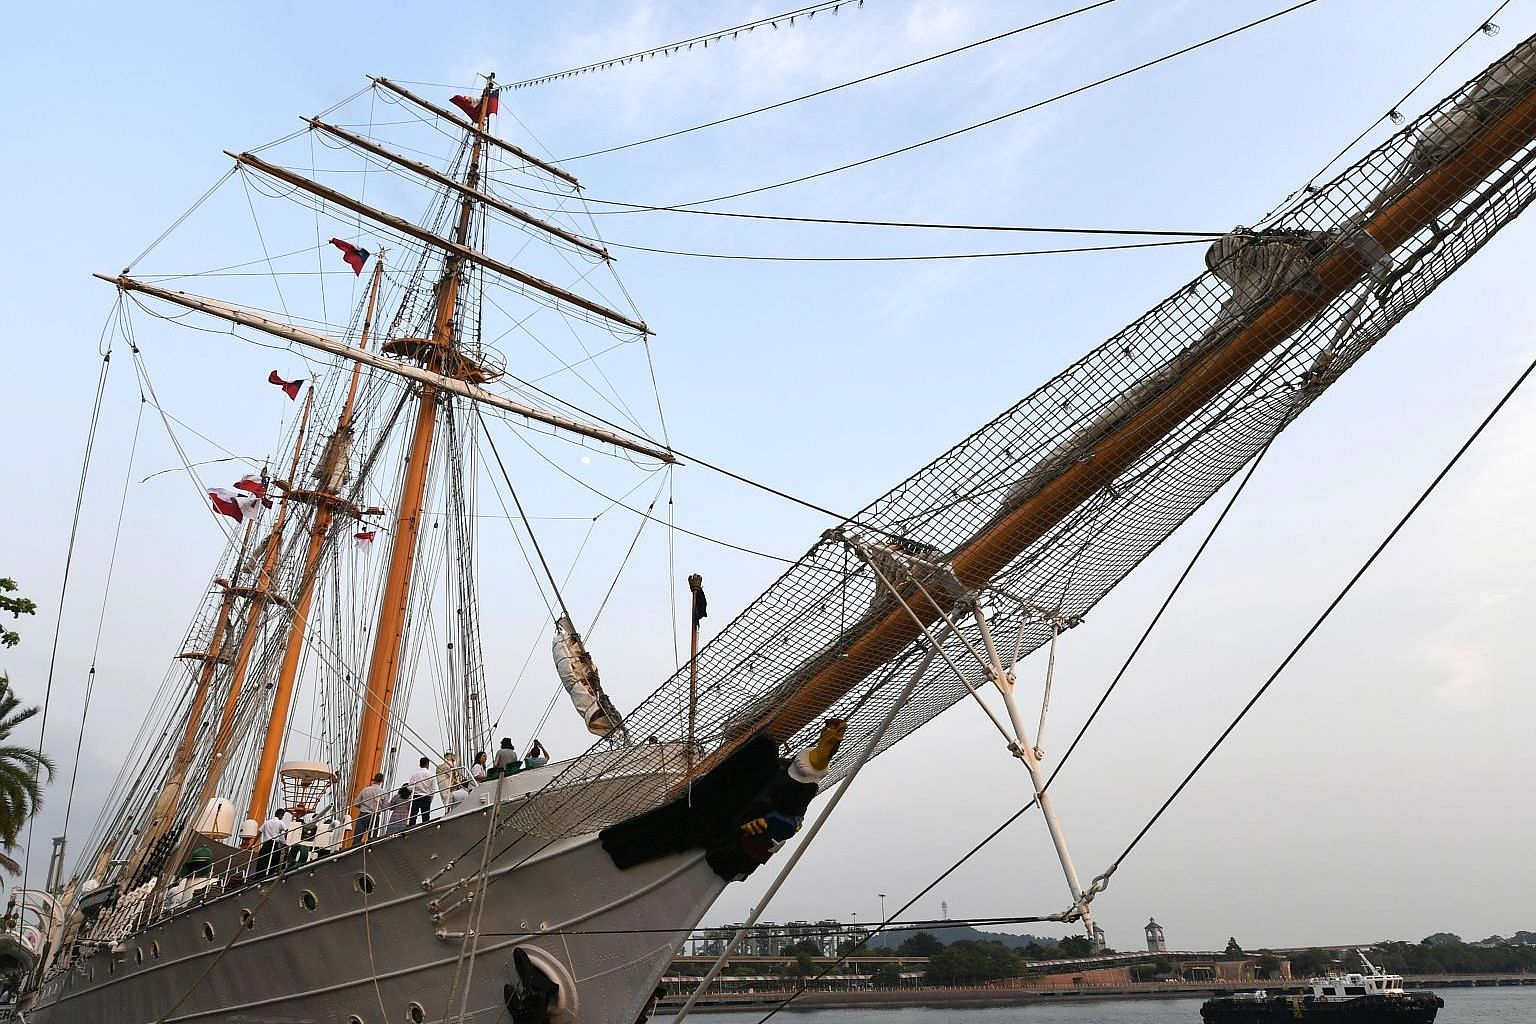 Members of the public now have the chance to board one of the largest tall ships in the world. The Esmeralda of the Chilean Navy is now docked at VivoCity Promenade. It will be open to visitors both today and tomorrow, from 10am to 6pm. It is the thi